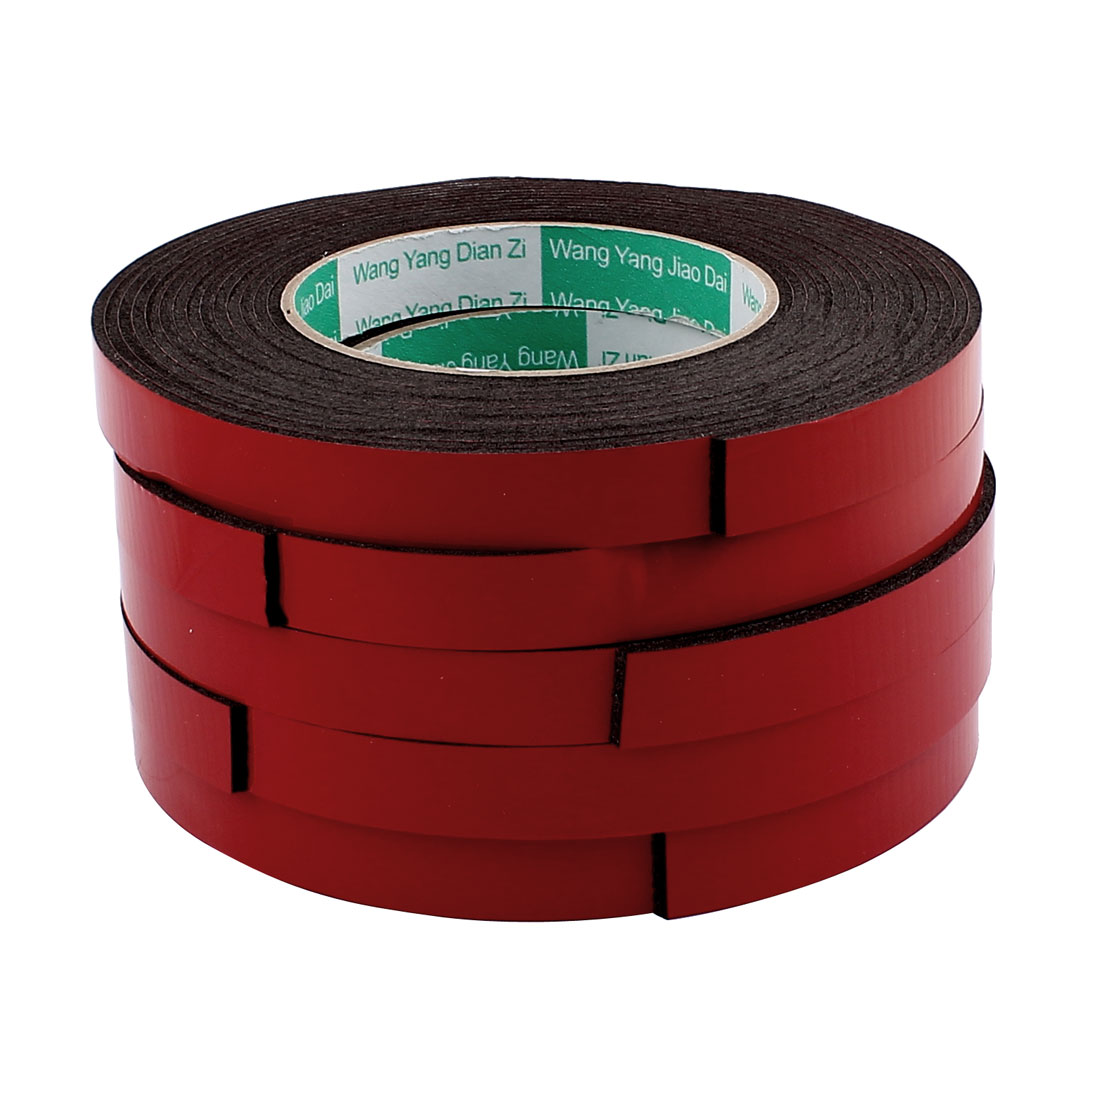 Unique Bargains 5pcs 5M Long 15MM  x 2MM Strong Double Sided Adhesive Tape Sponge Tape Red